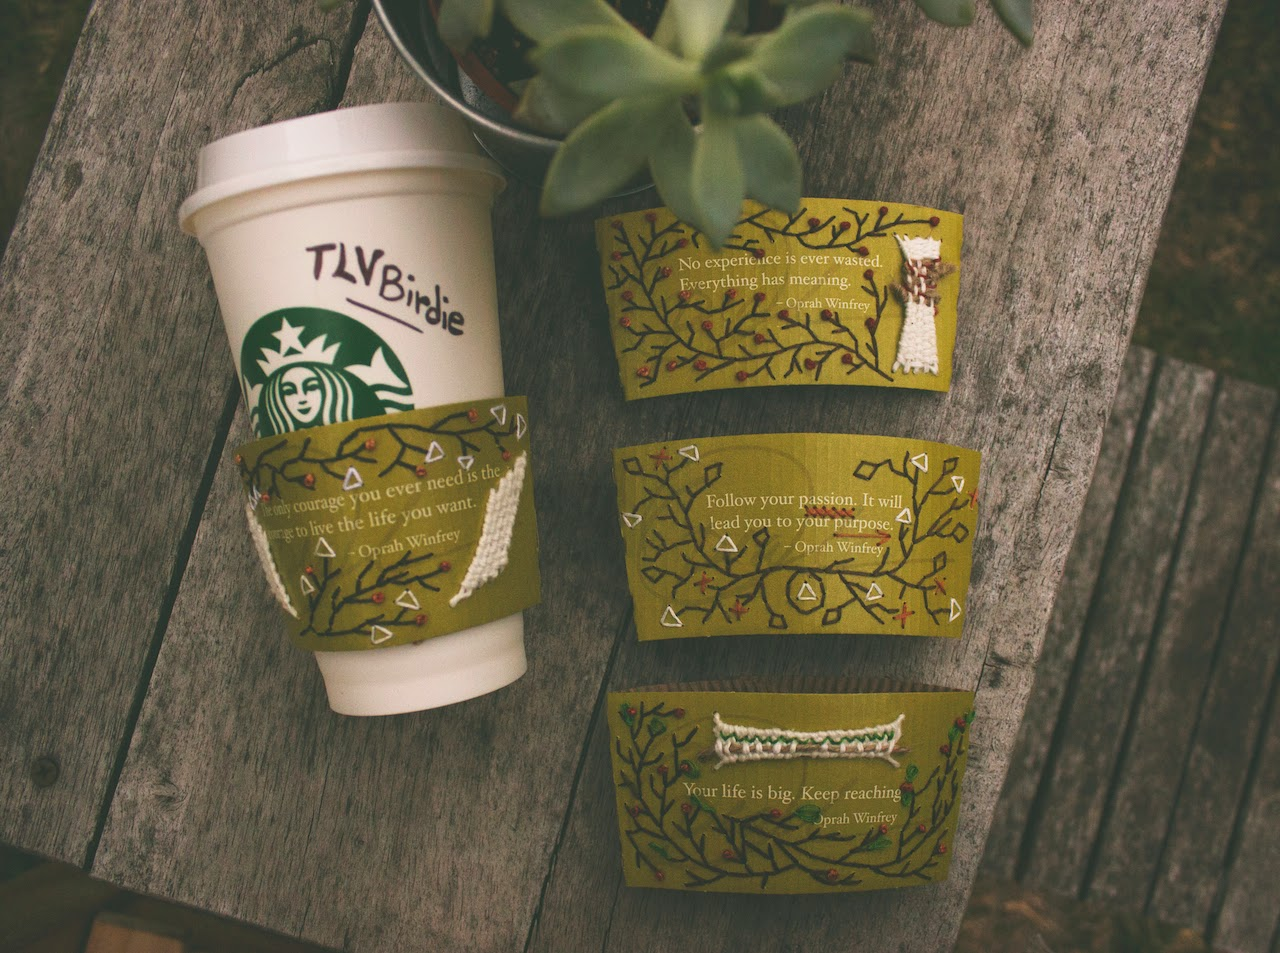 Starbucks cup holders hand stitched embroidery art, emphasizing the Teavana and Oprah's Steep Your Soul campaign in an eco-friendly way.